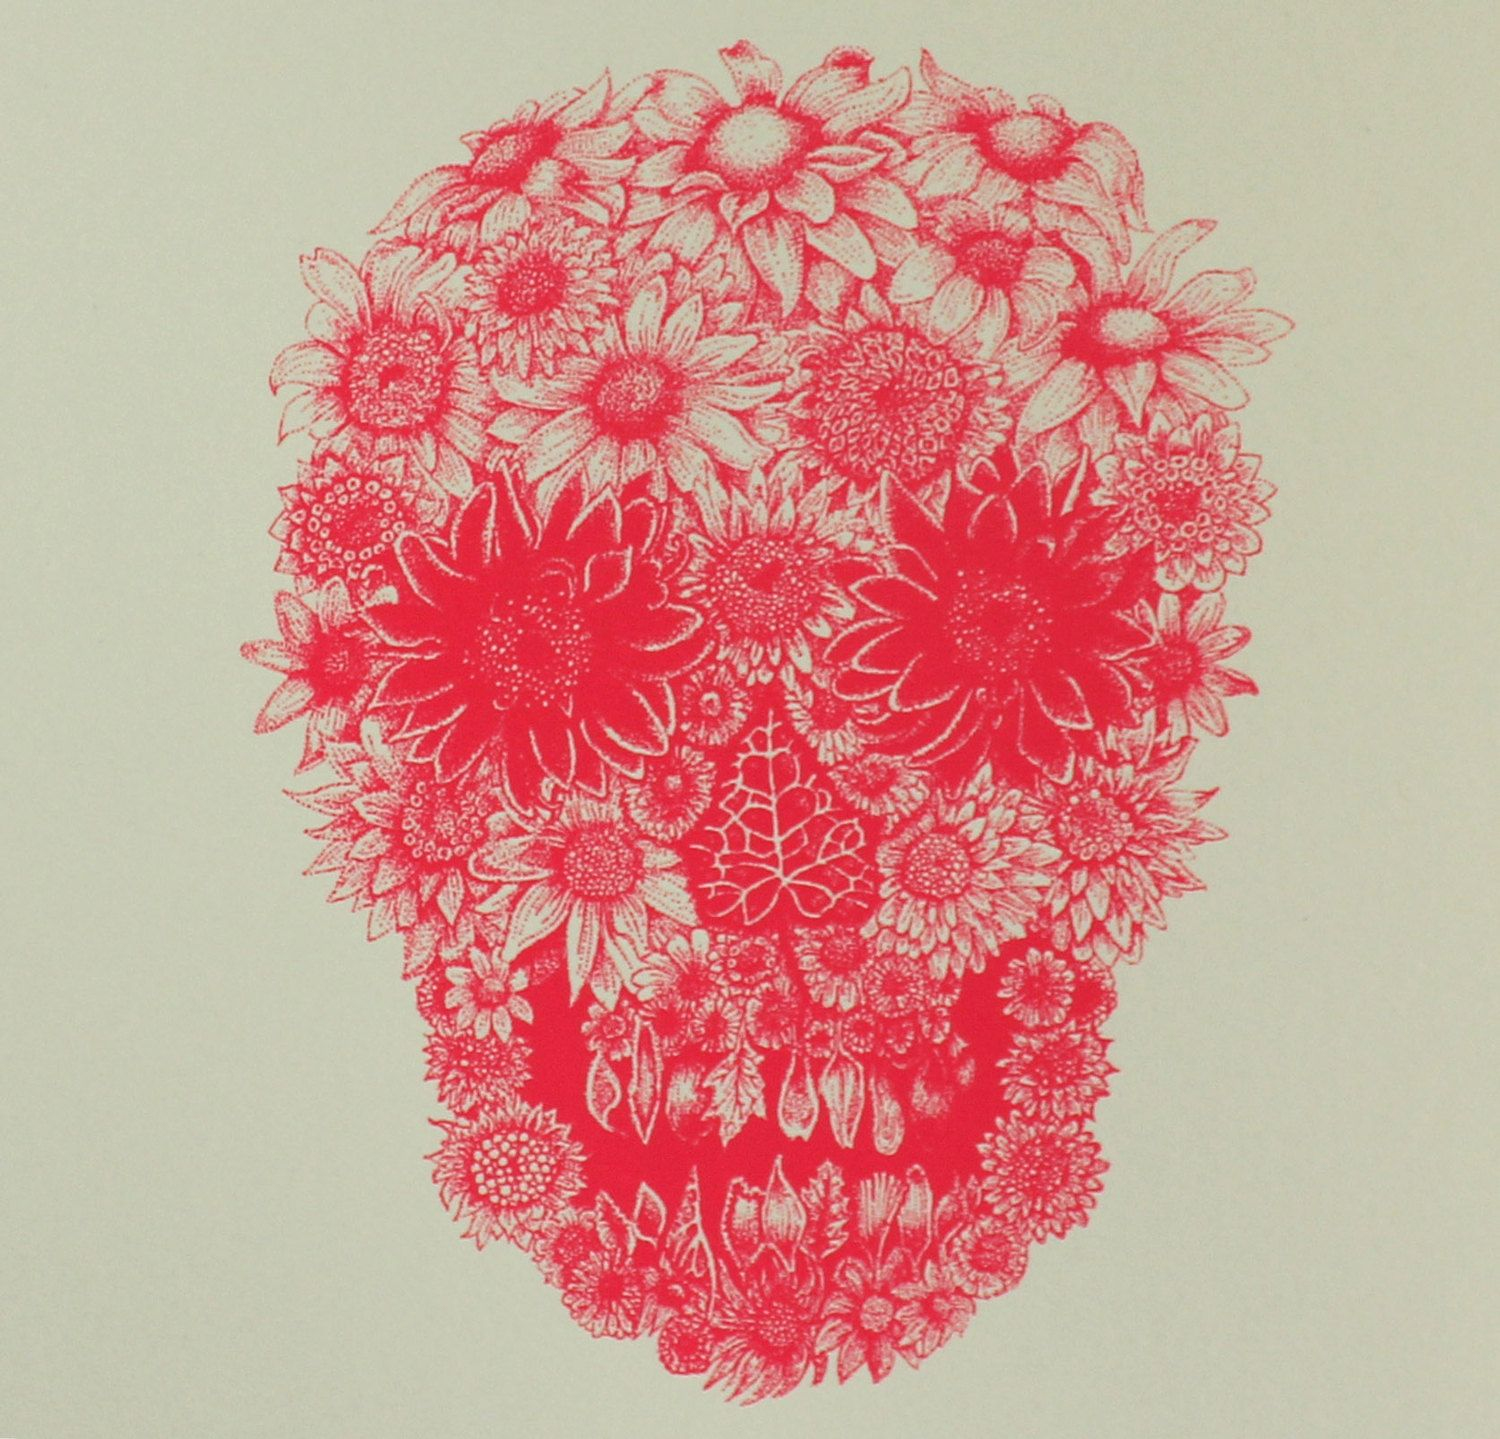 Flower skull google search skin art and other forms pinterest items similar to neon pink flower skull greeting card from illustrator izzie klingels on etsy mightylinksfo